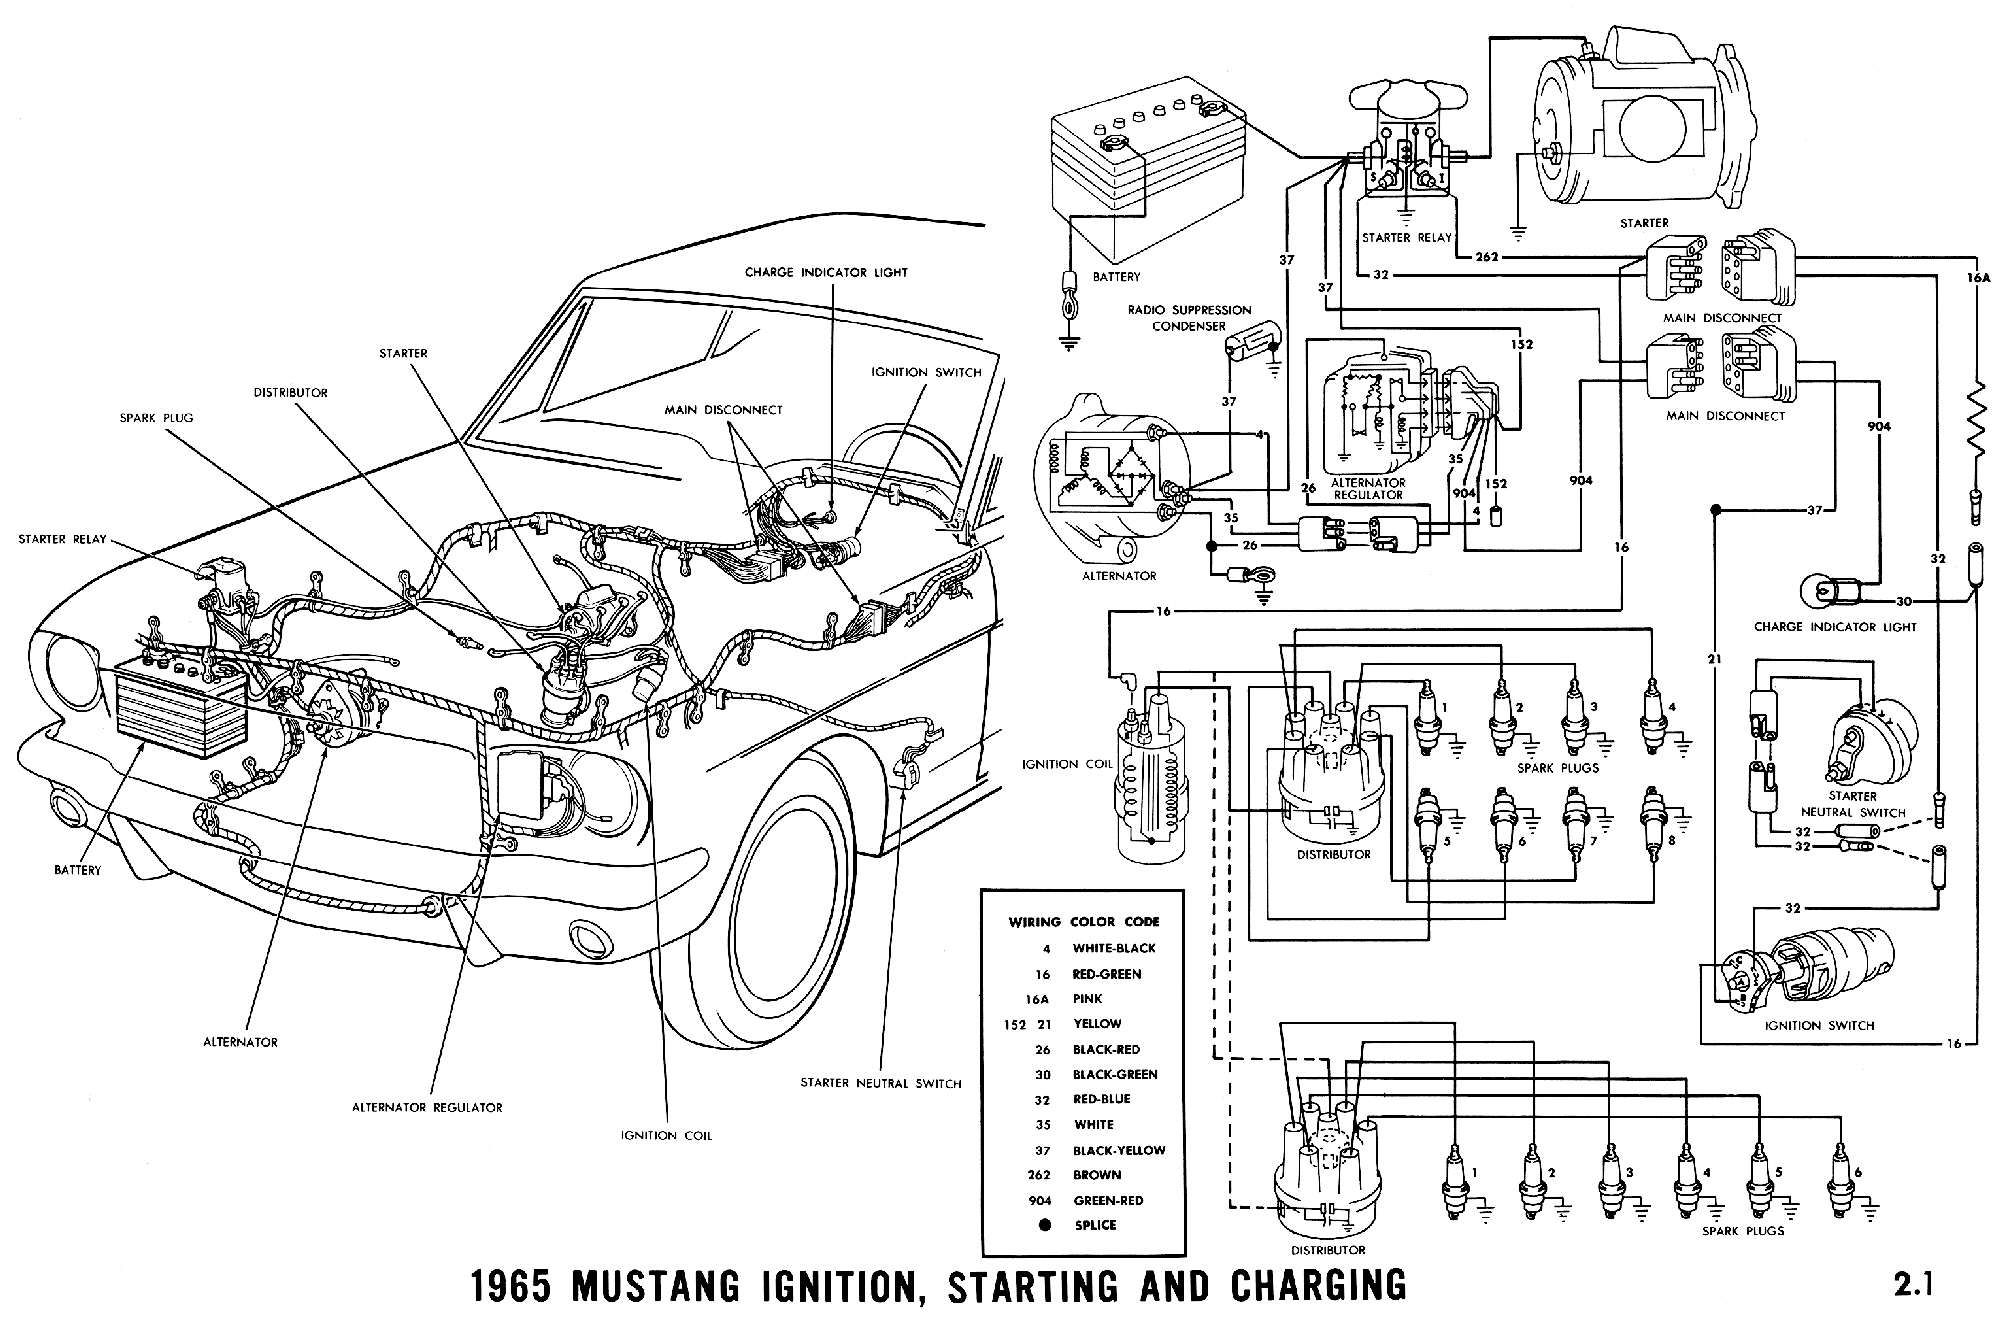 1969 mustang wiring diagram mustangs plus buy mustang parts online